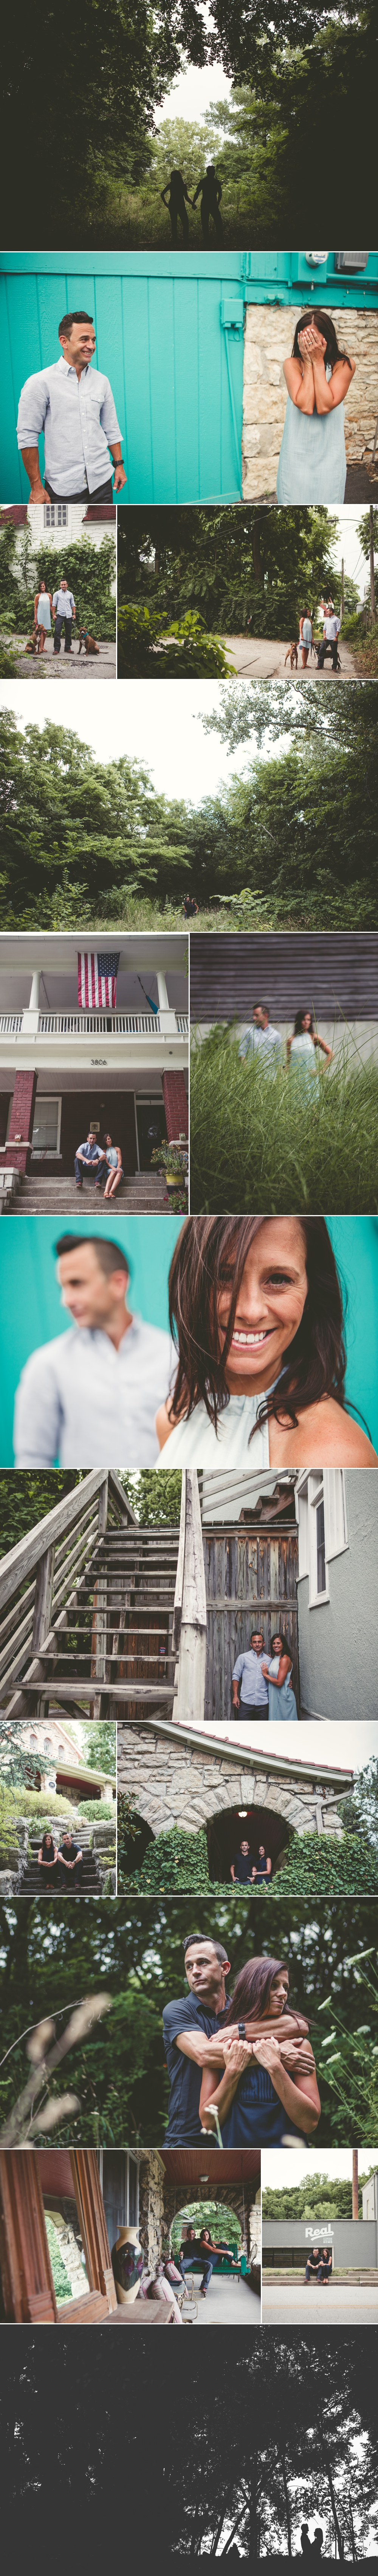 jason_domingues_photography_best_kansas_city_wedding_photographer_engagement_session